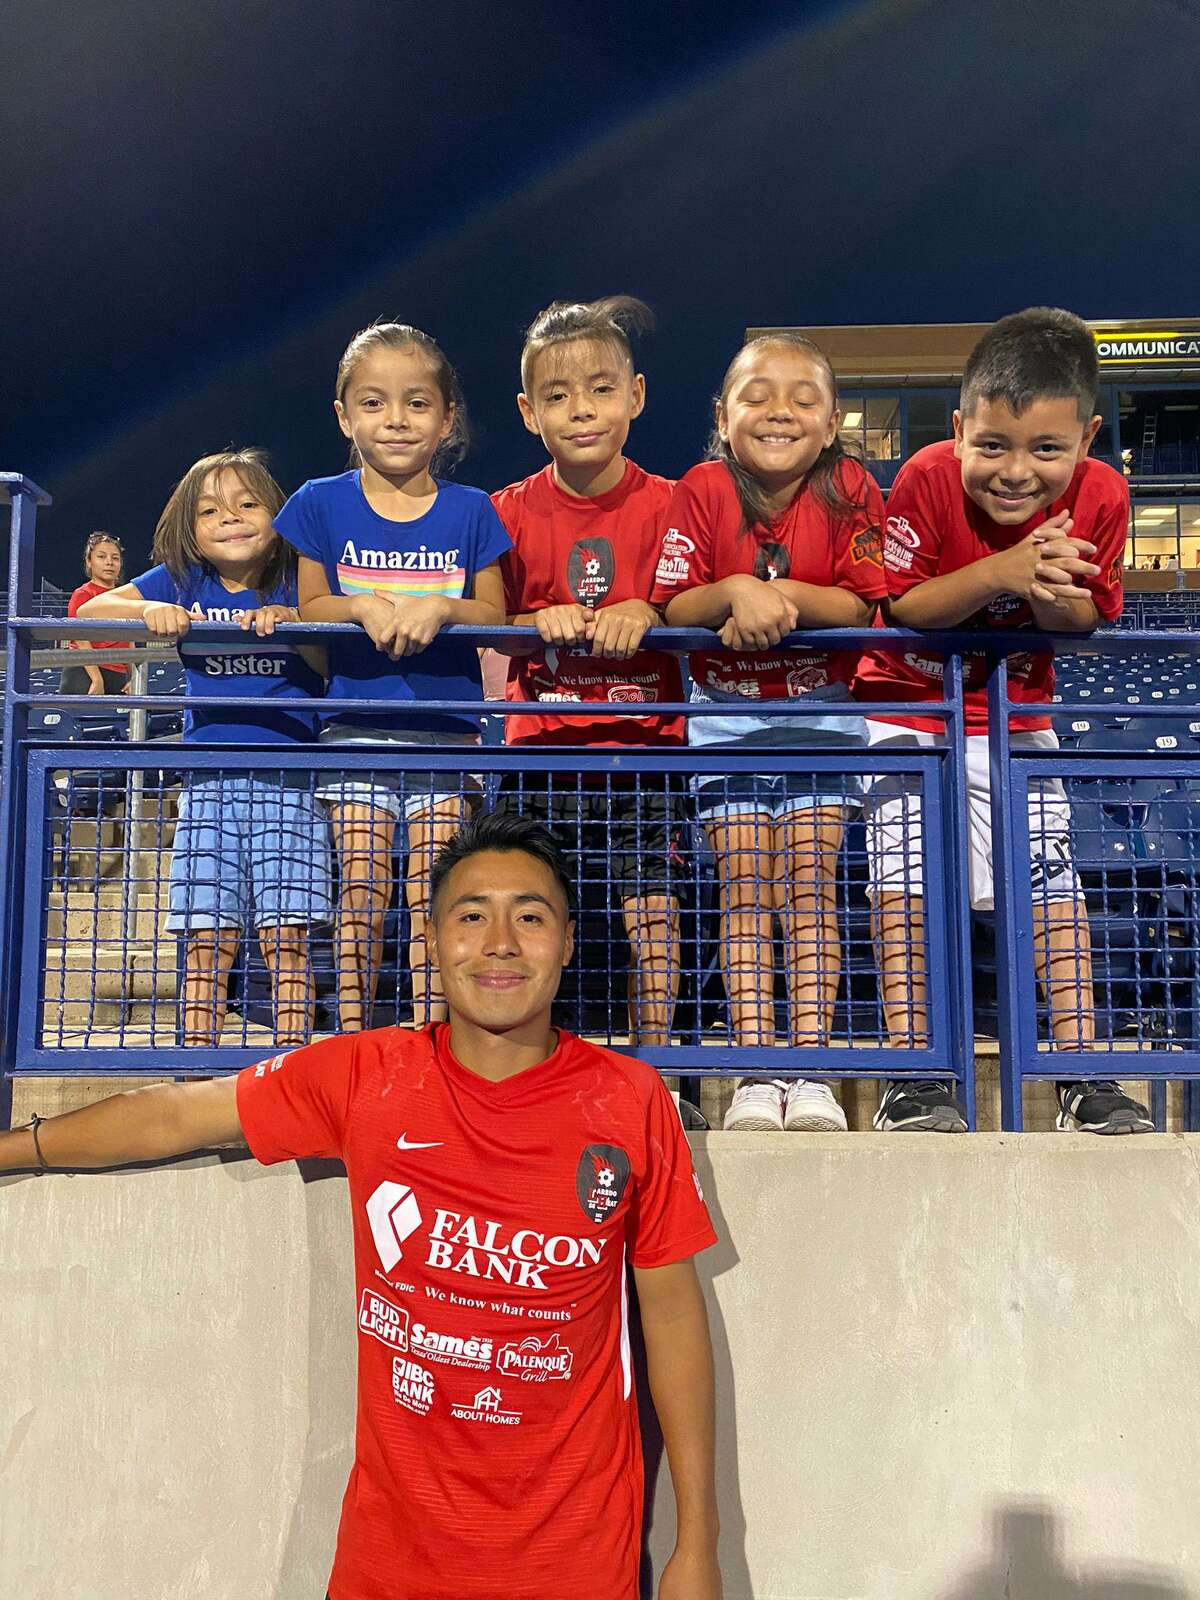 Laredo Heat SC captain Erwin Regules is pictured with members of the youth academy following a 1-1 draw on the road against the Midland-Odessa Sockers FC. Regules and the Heat return to action Saturday with a 7:30 p.m. road game against the Fort Worth Vaqueros FC.